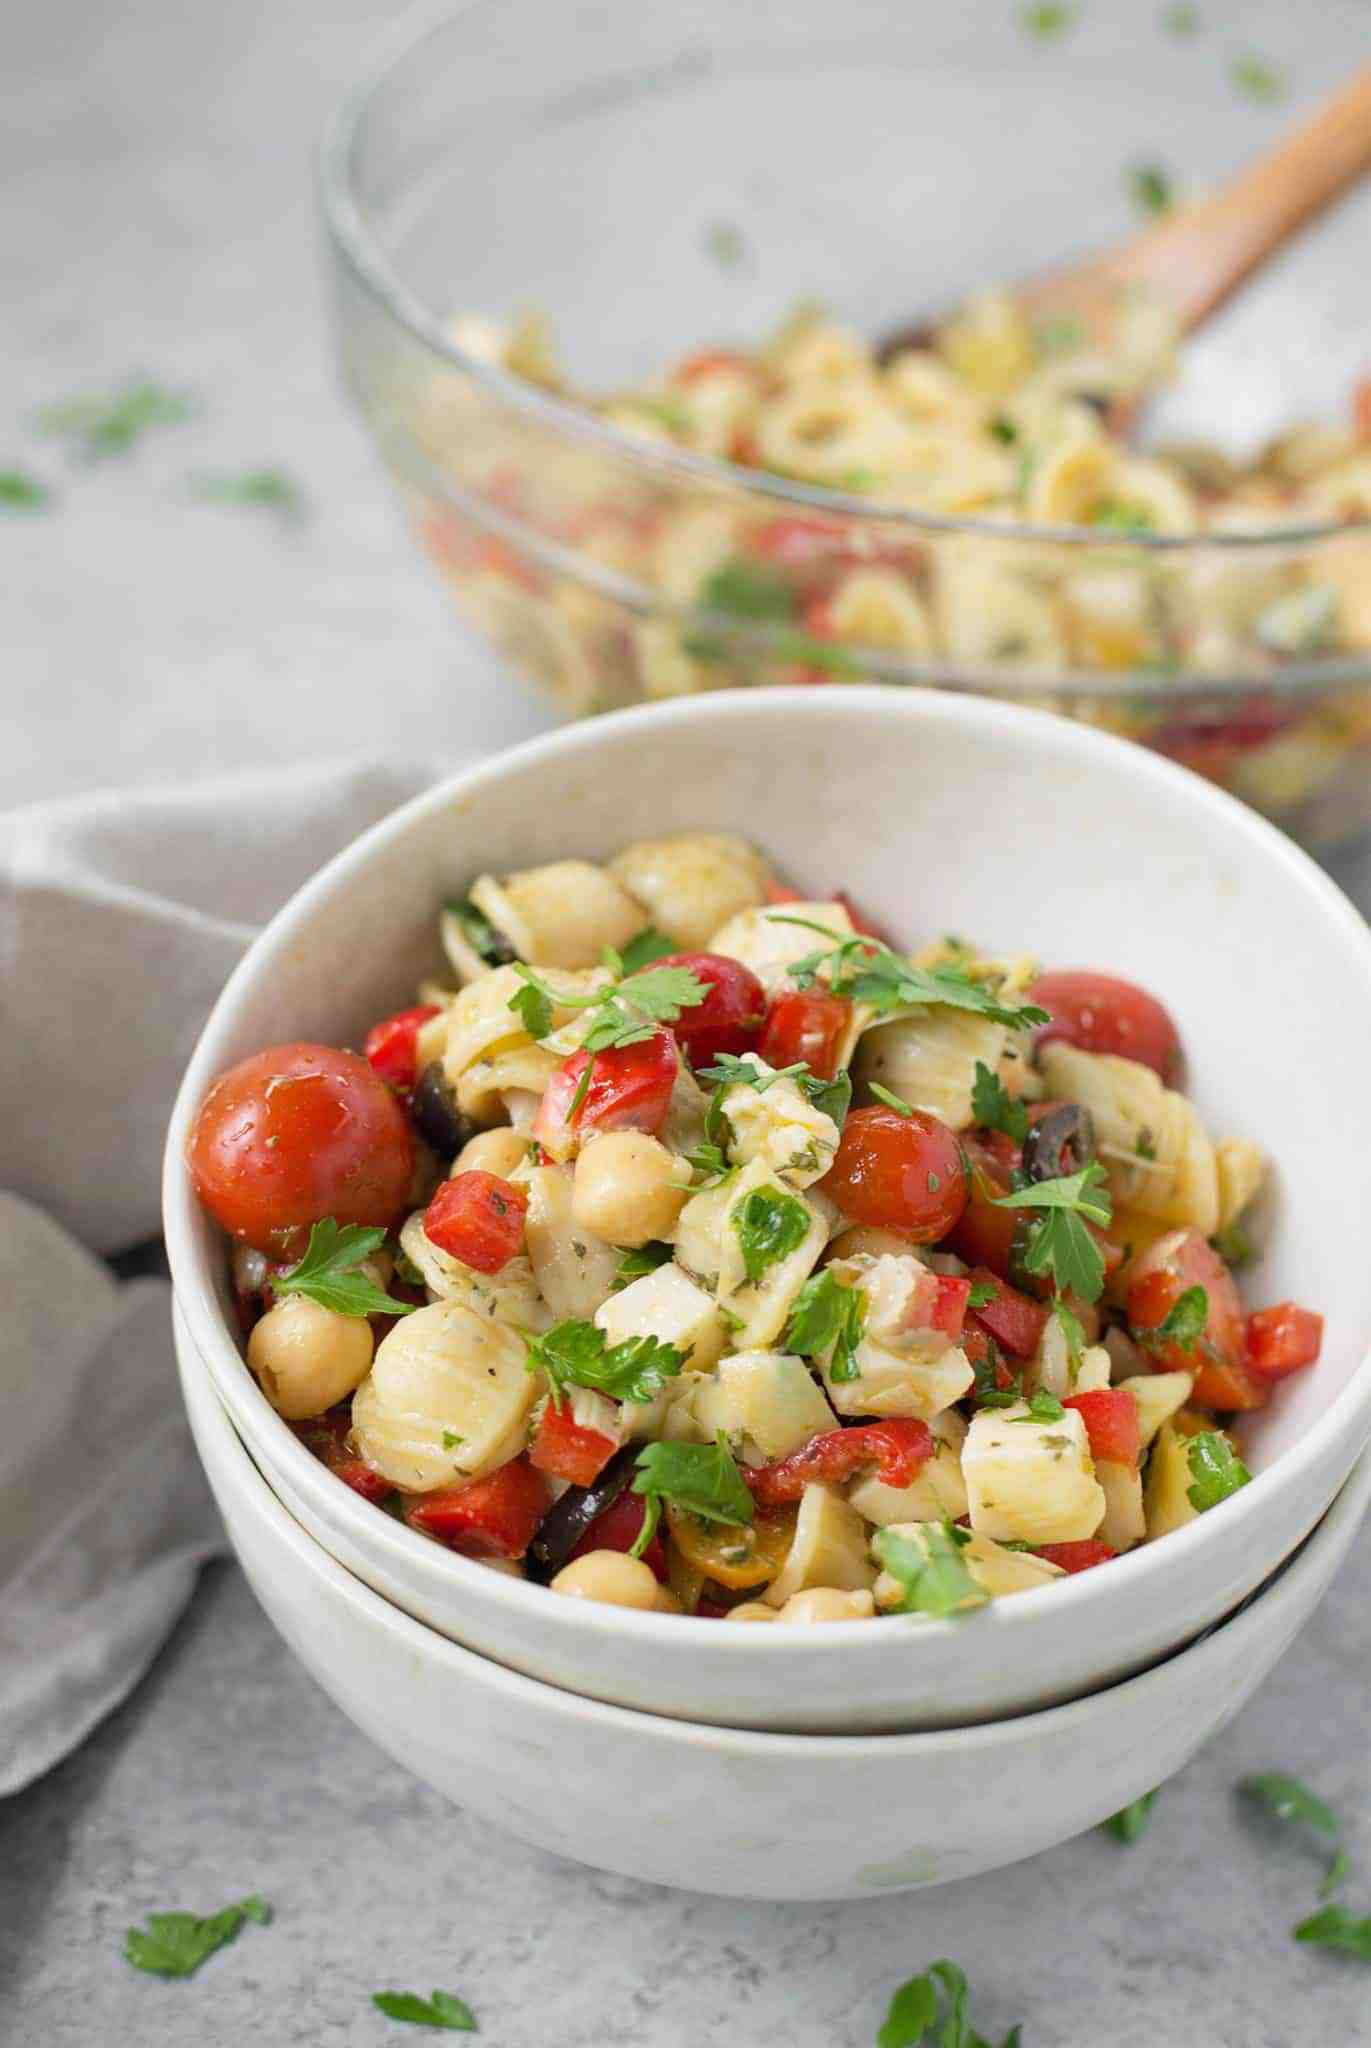 Serve the pasta salad immediately or refrigerate for the next few days